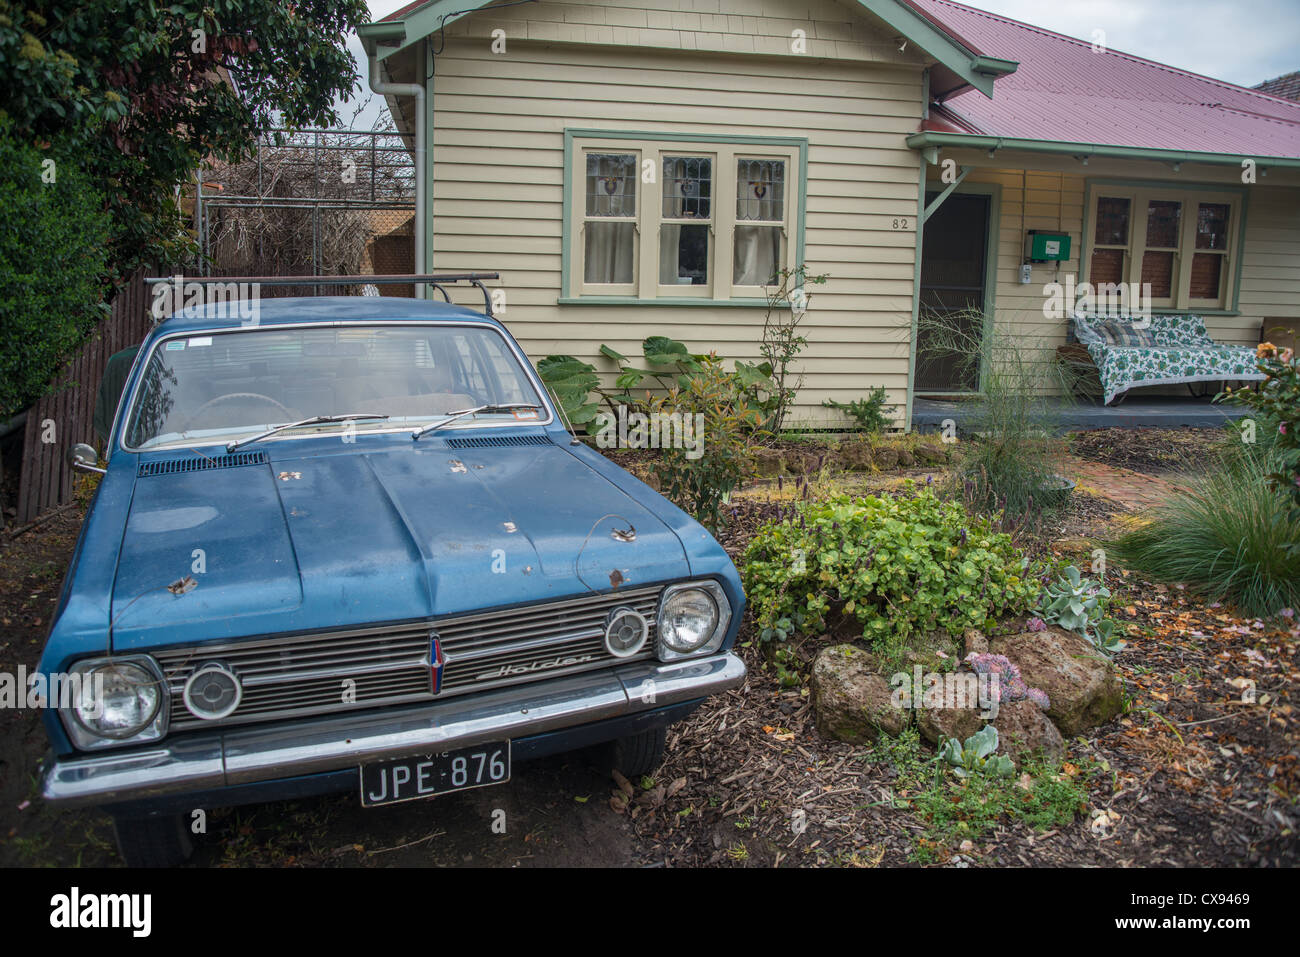 Car Outside A House Stock Photos & Car Outside A House Stock Images ...